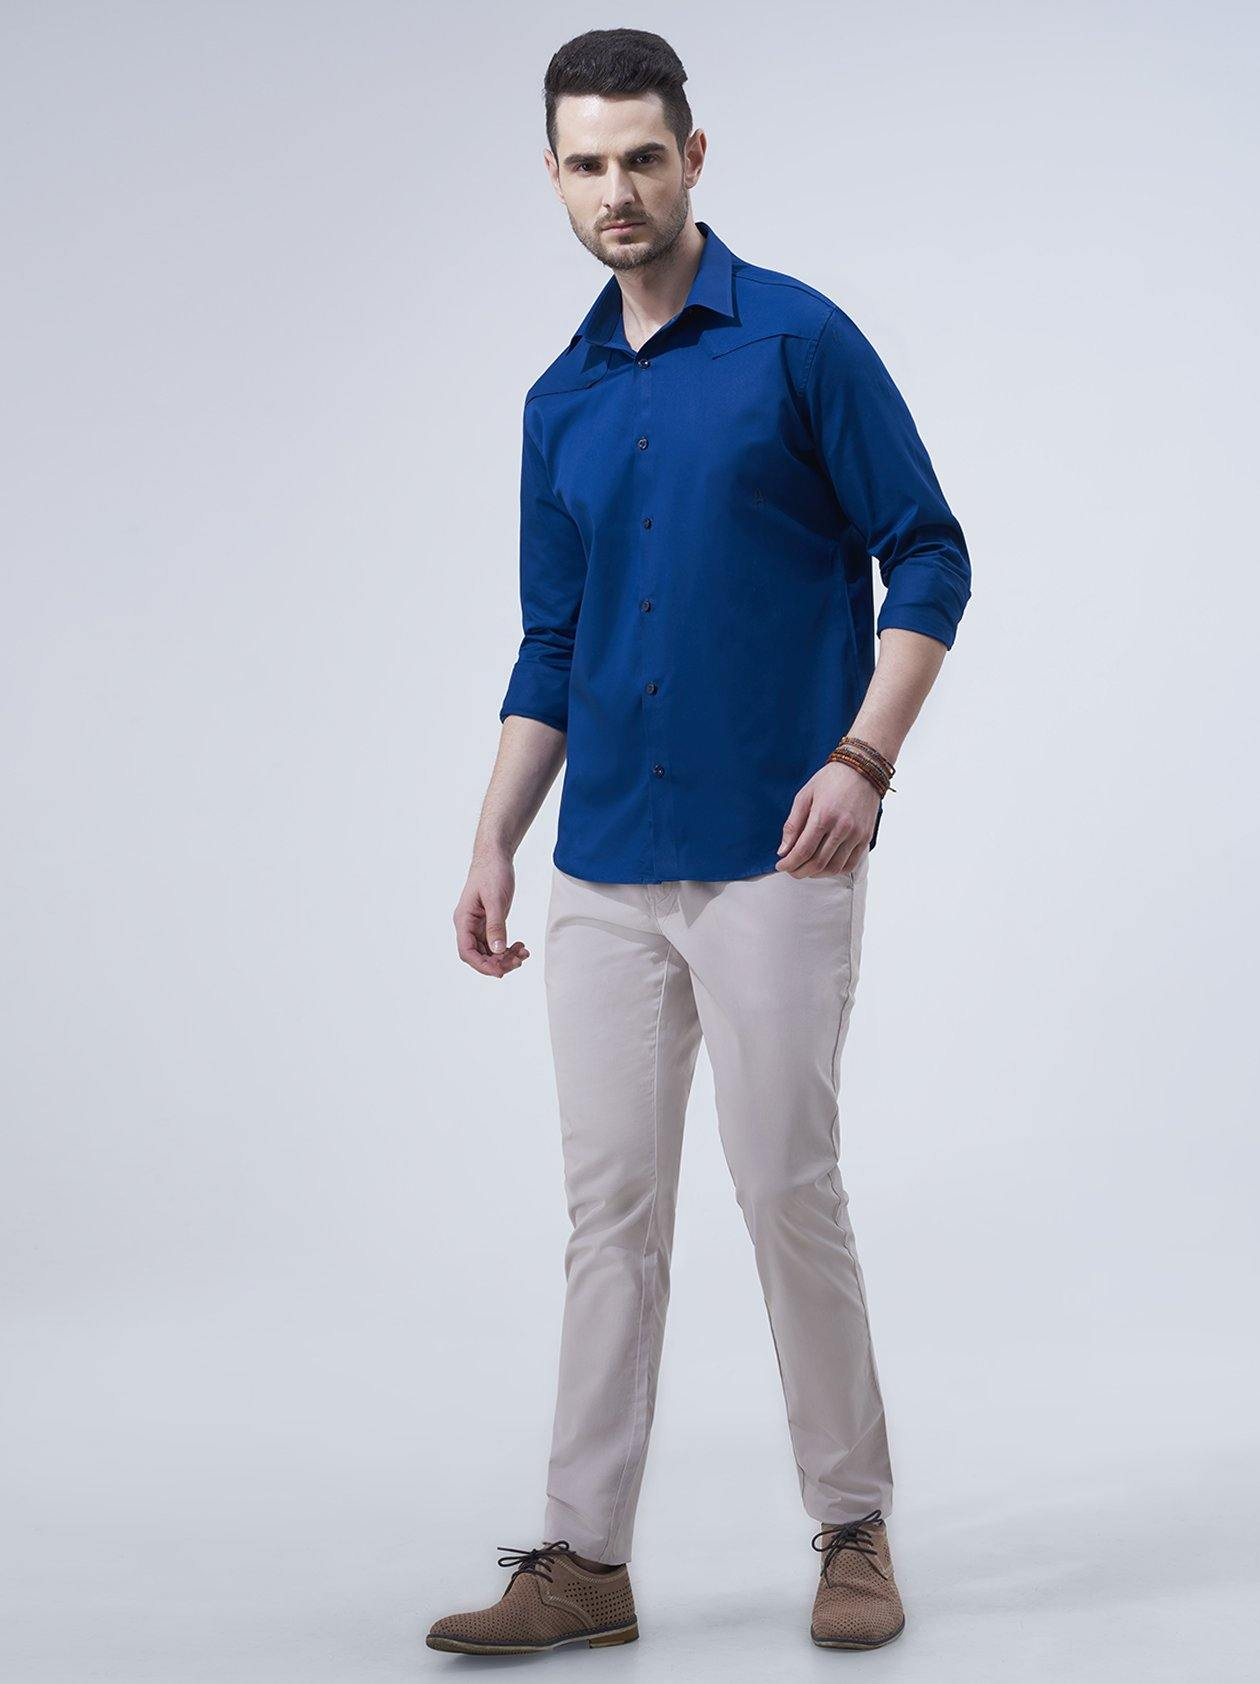 Bottle Blue Shirt for Men